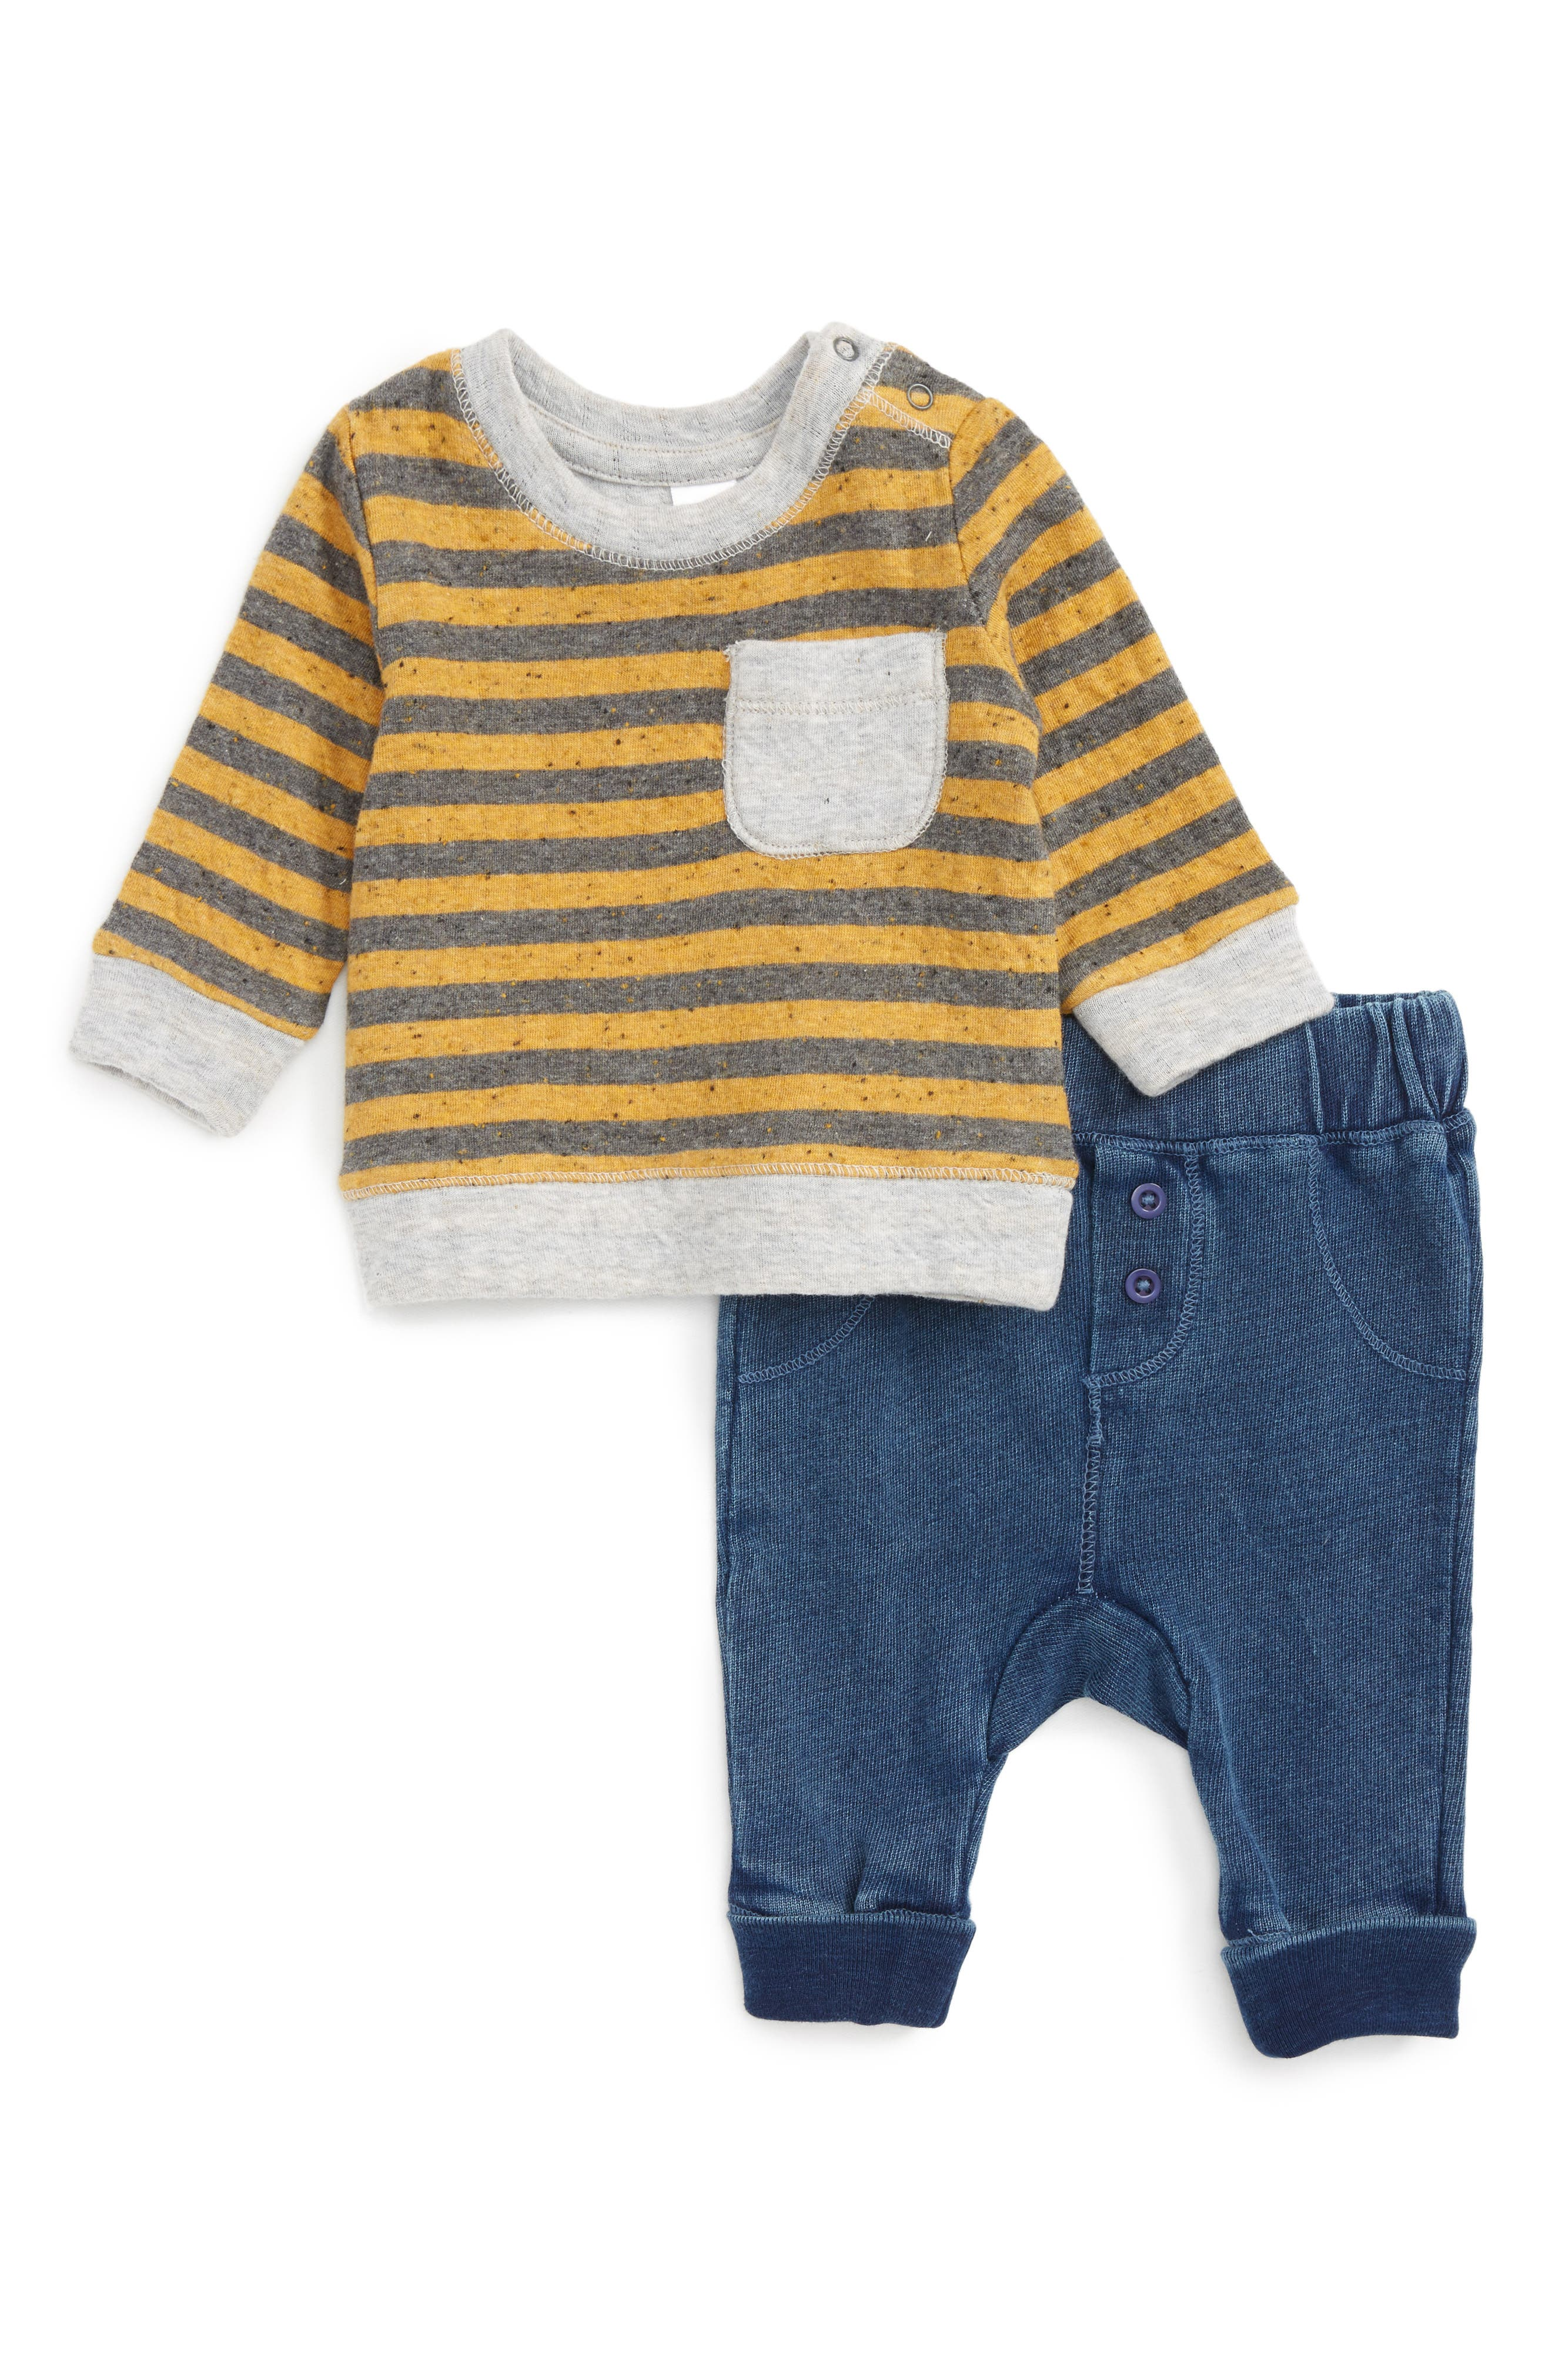 Alternate Image 1 Selected - Nordstrom Baby Stripe T-Shirt & Pants Set (Baby Boys)